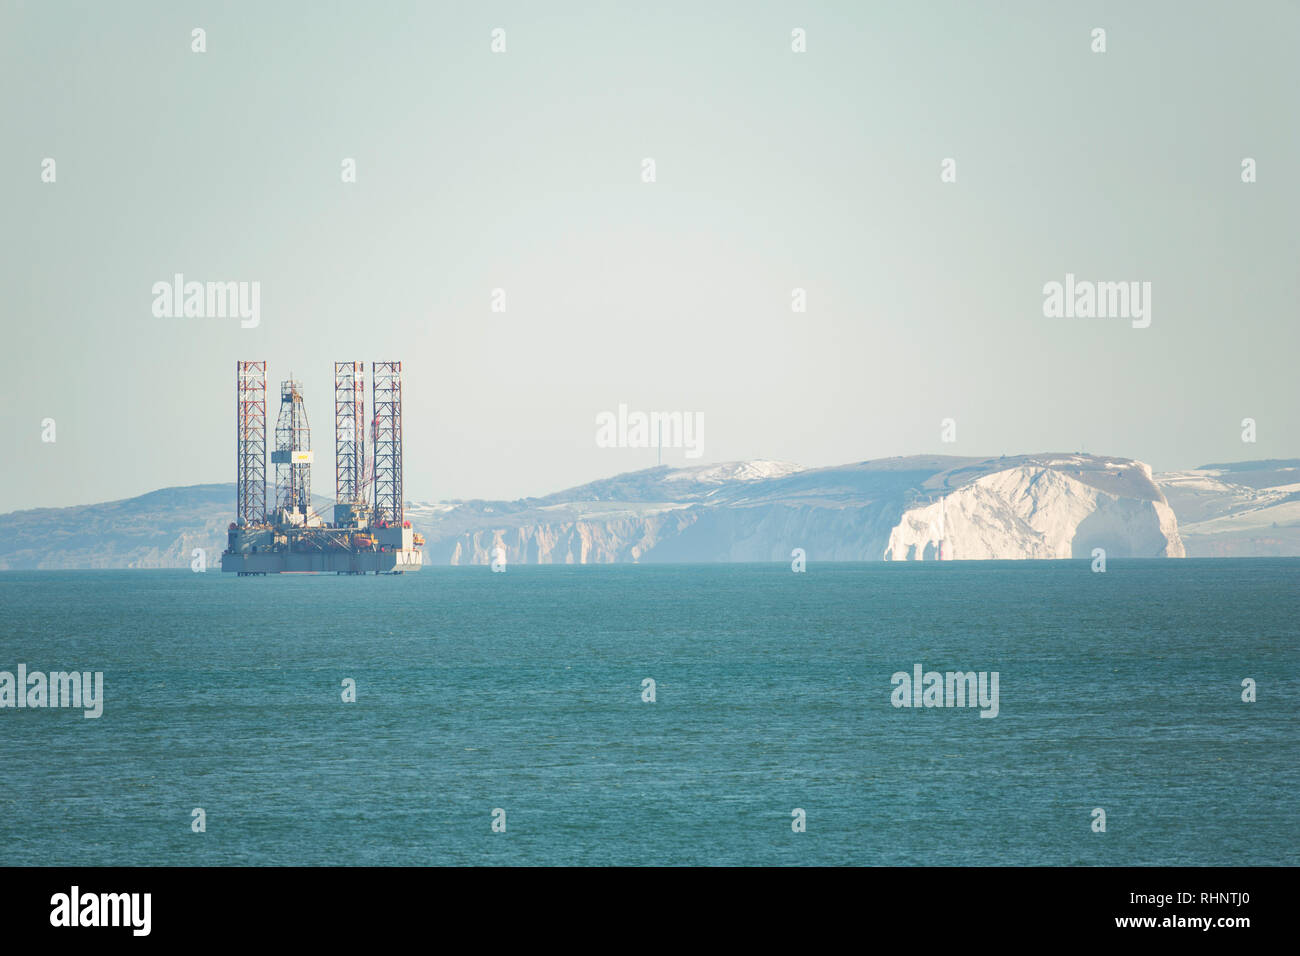 An ENSCO 72 oil rig against a backdrop of the Isle of Wight. The rig will be drilling to a depth of more than 1000 metres into the seabed in th Stock Photo